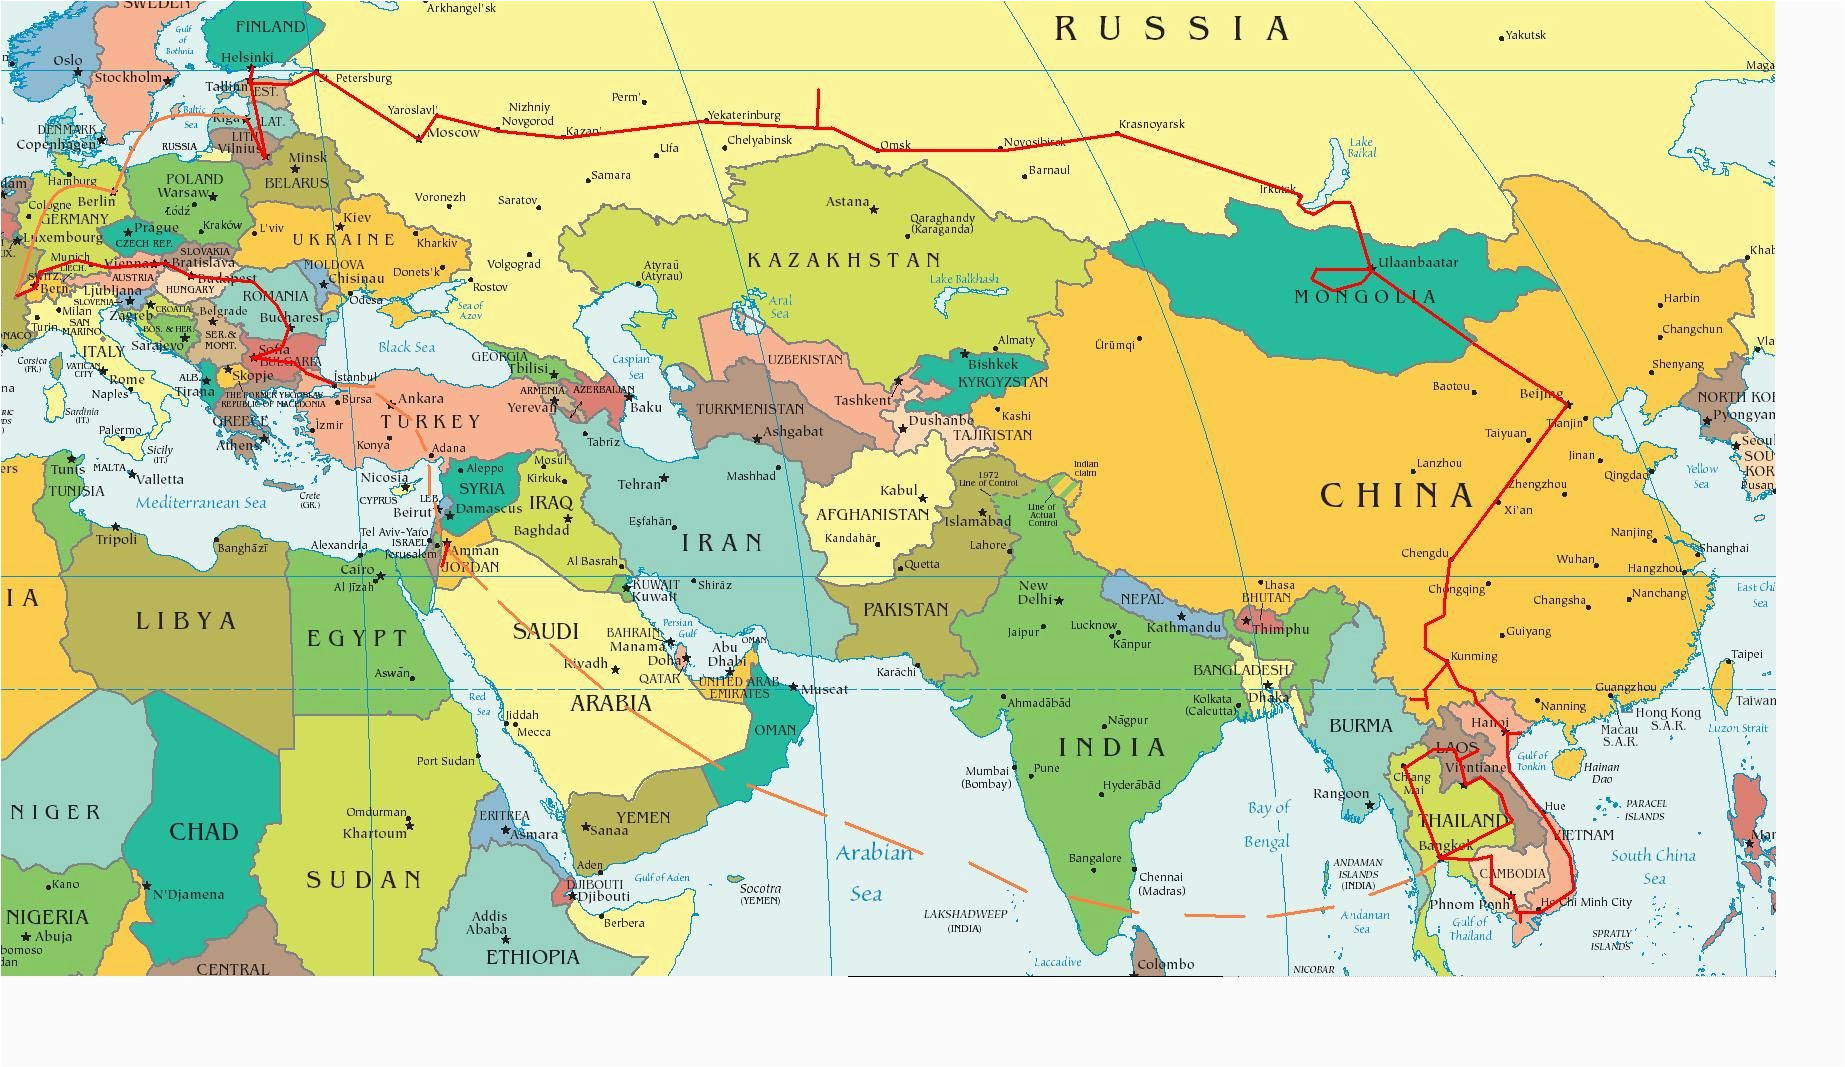 Europe Map Pics Eastern Europe and Middle East Partial Europe Middle East